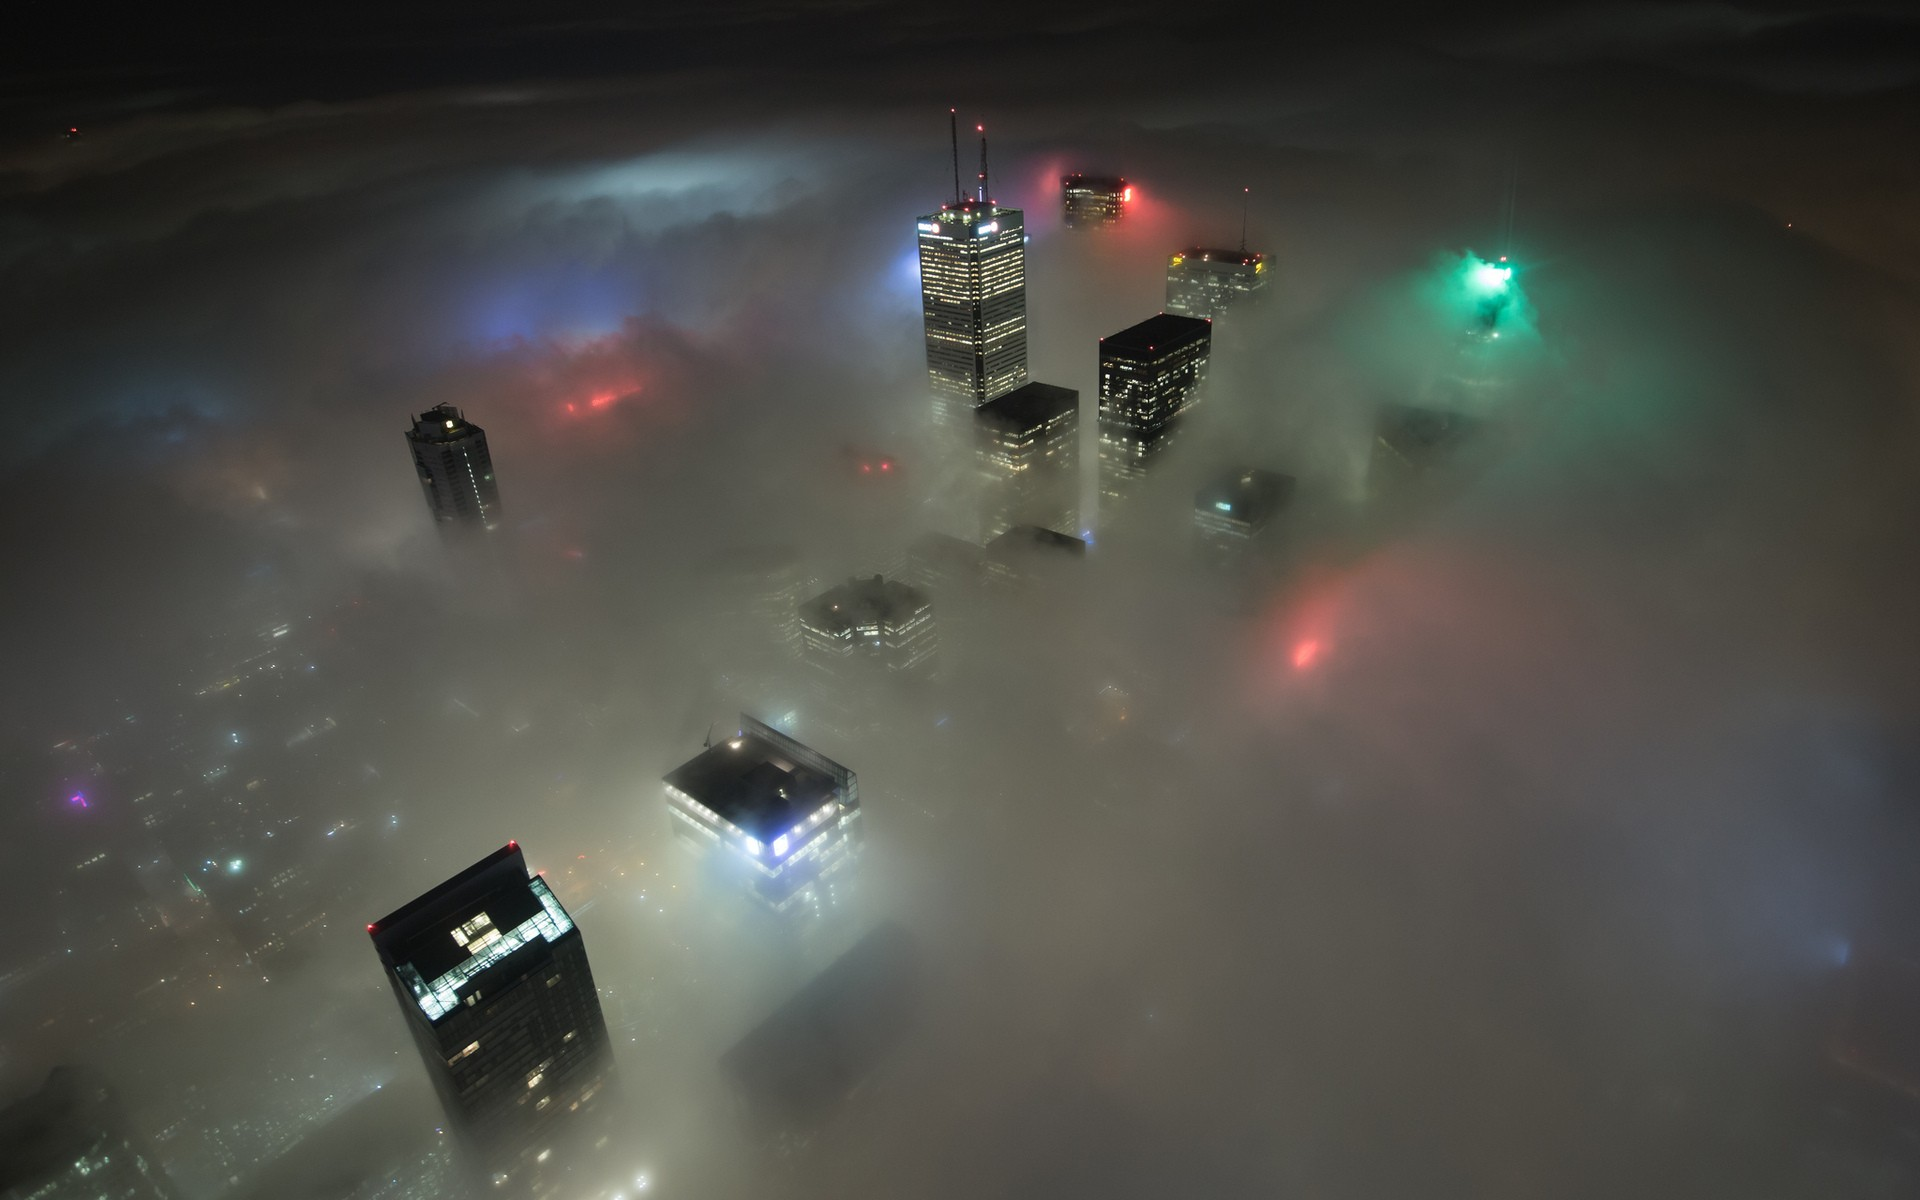 City-Obscured-by-Fog-x-wallpaper-wp4604860-1